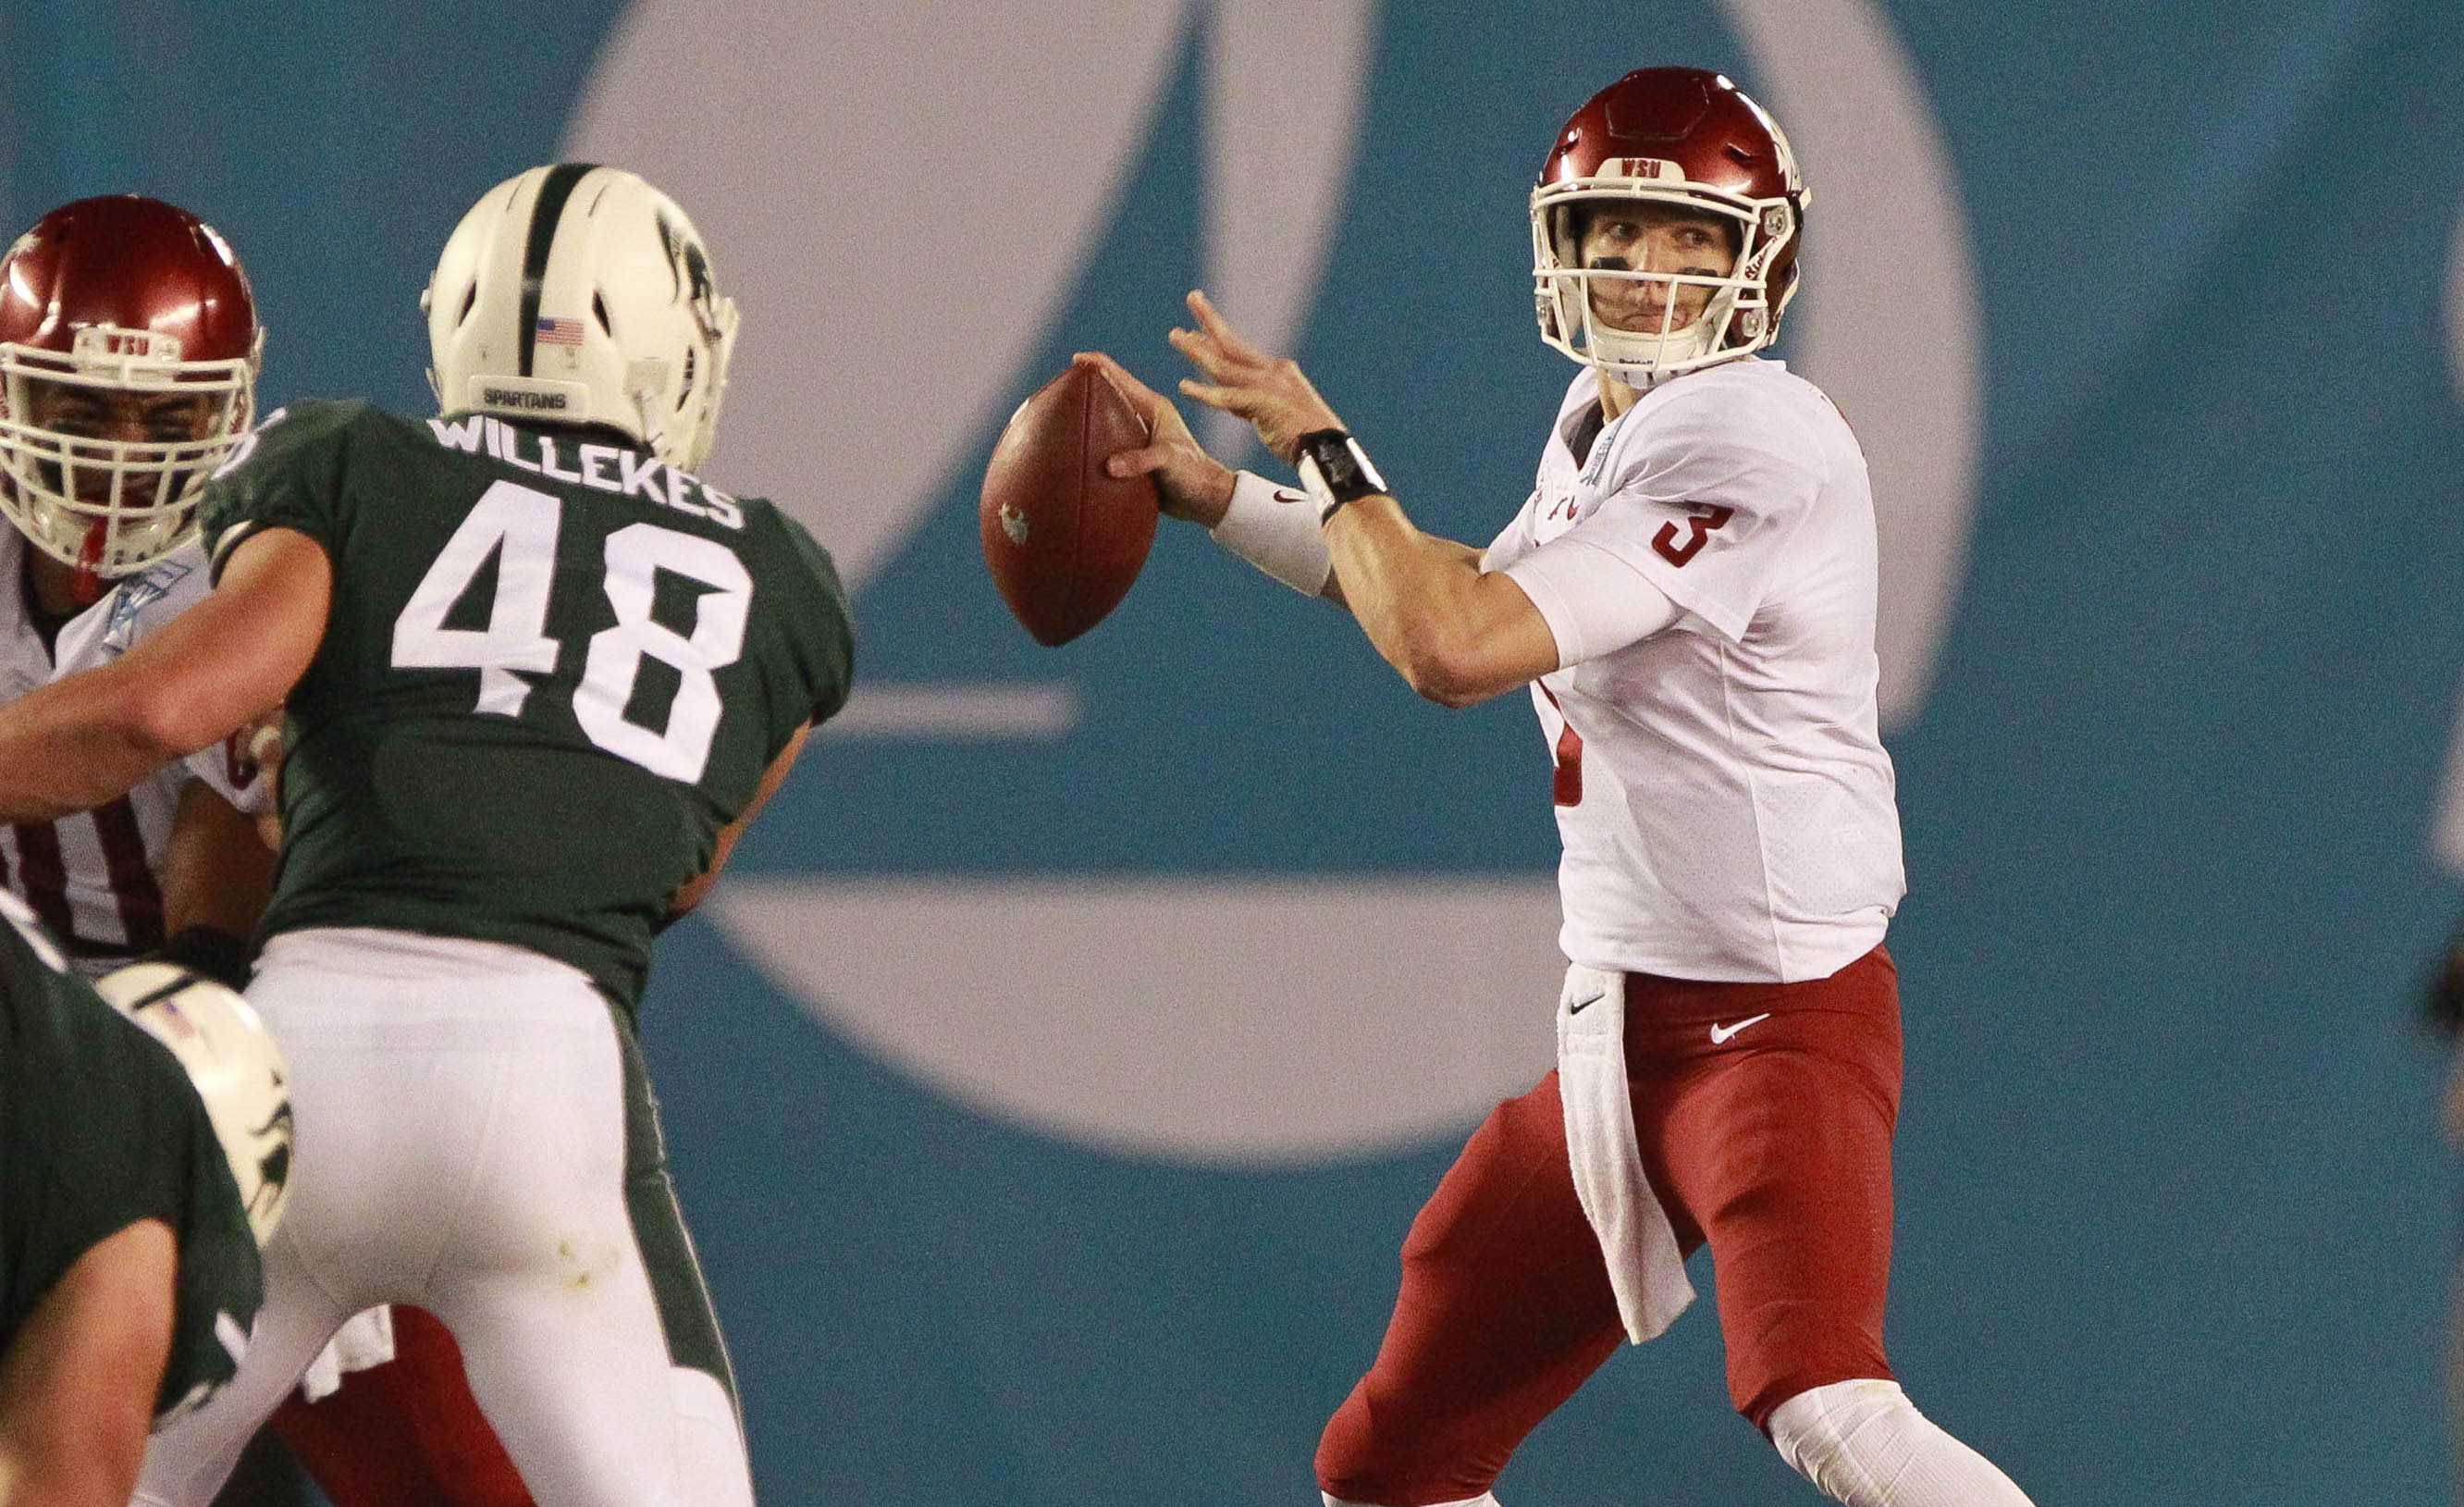 Washington State quarterback Tyler Hilinski, right, looks to pass against Michigan State during the Holiday Bowl at SDCCU Stadium in San Diego on Dec. 28, 2017. (Hayne Palmour IV/San Diego Union-Tribune/TNS)